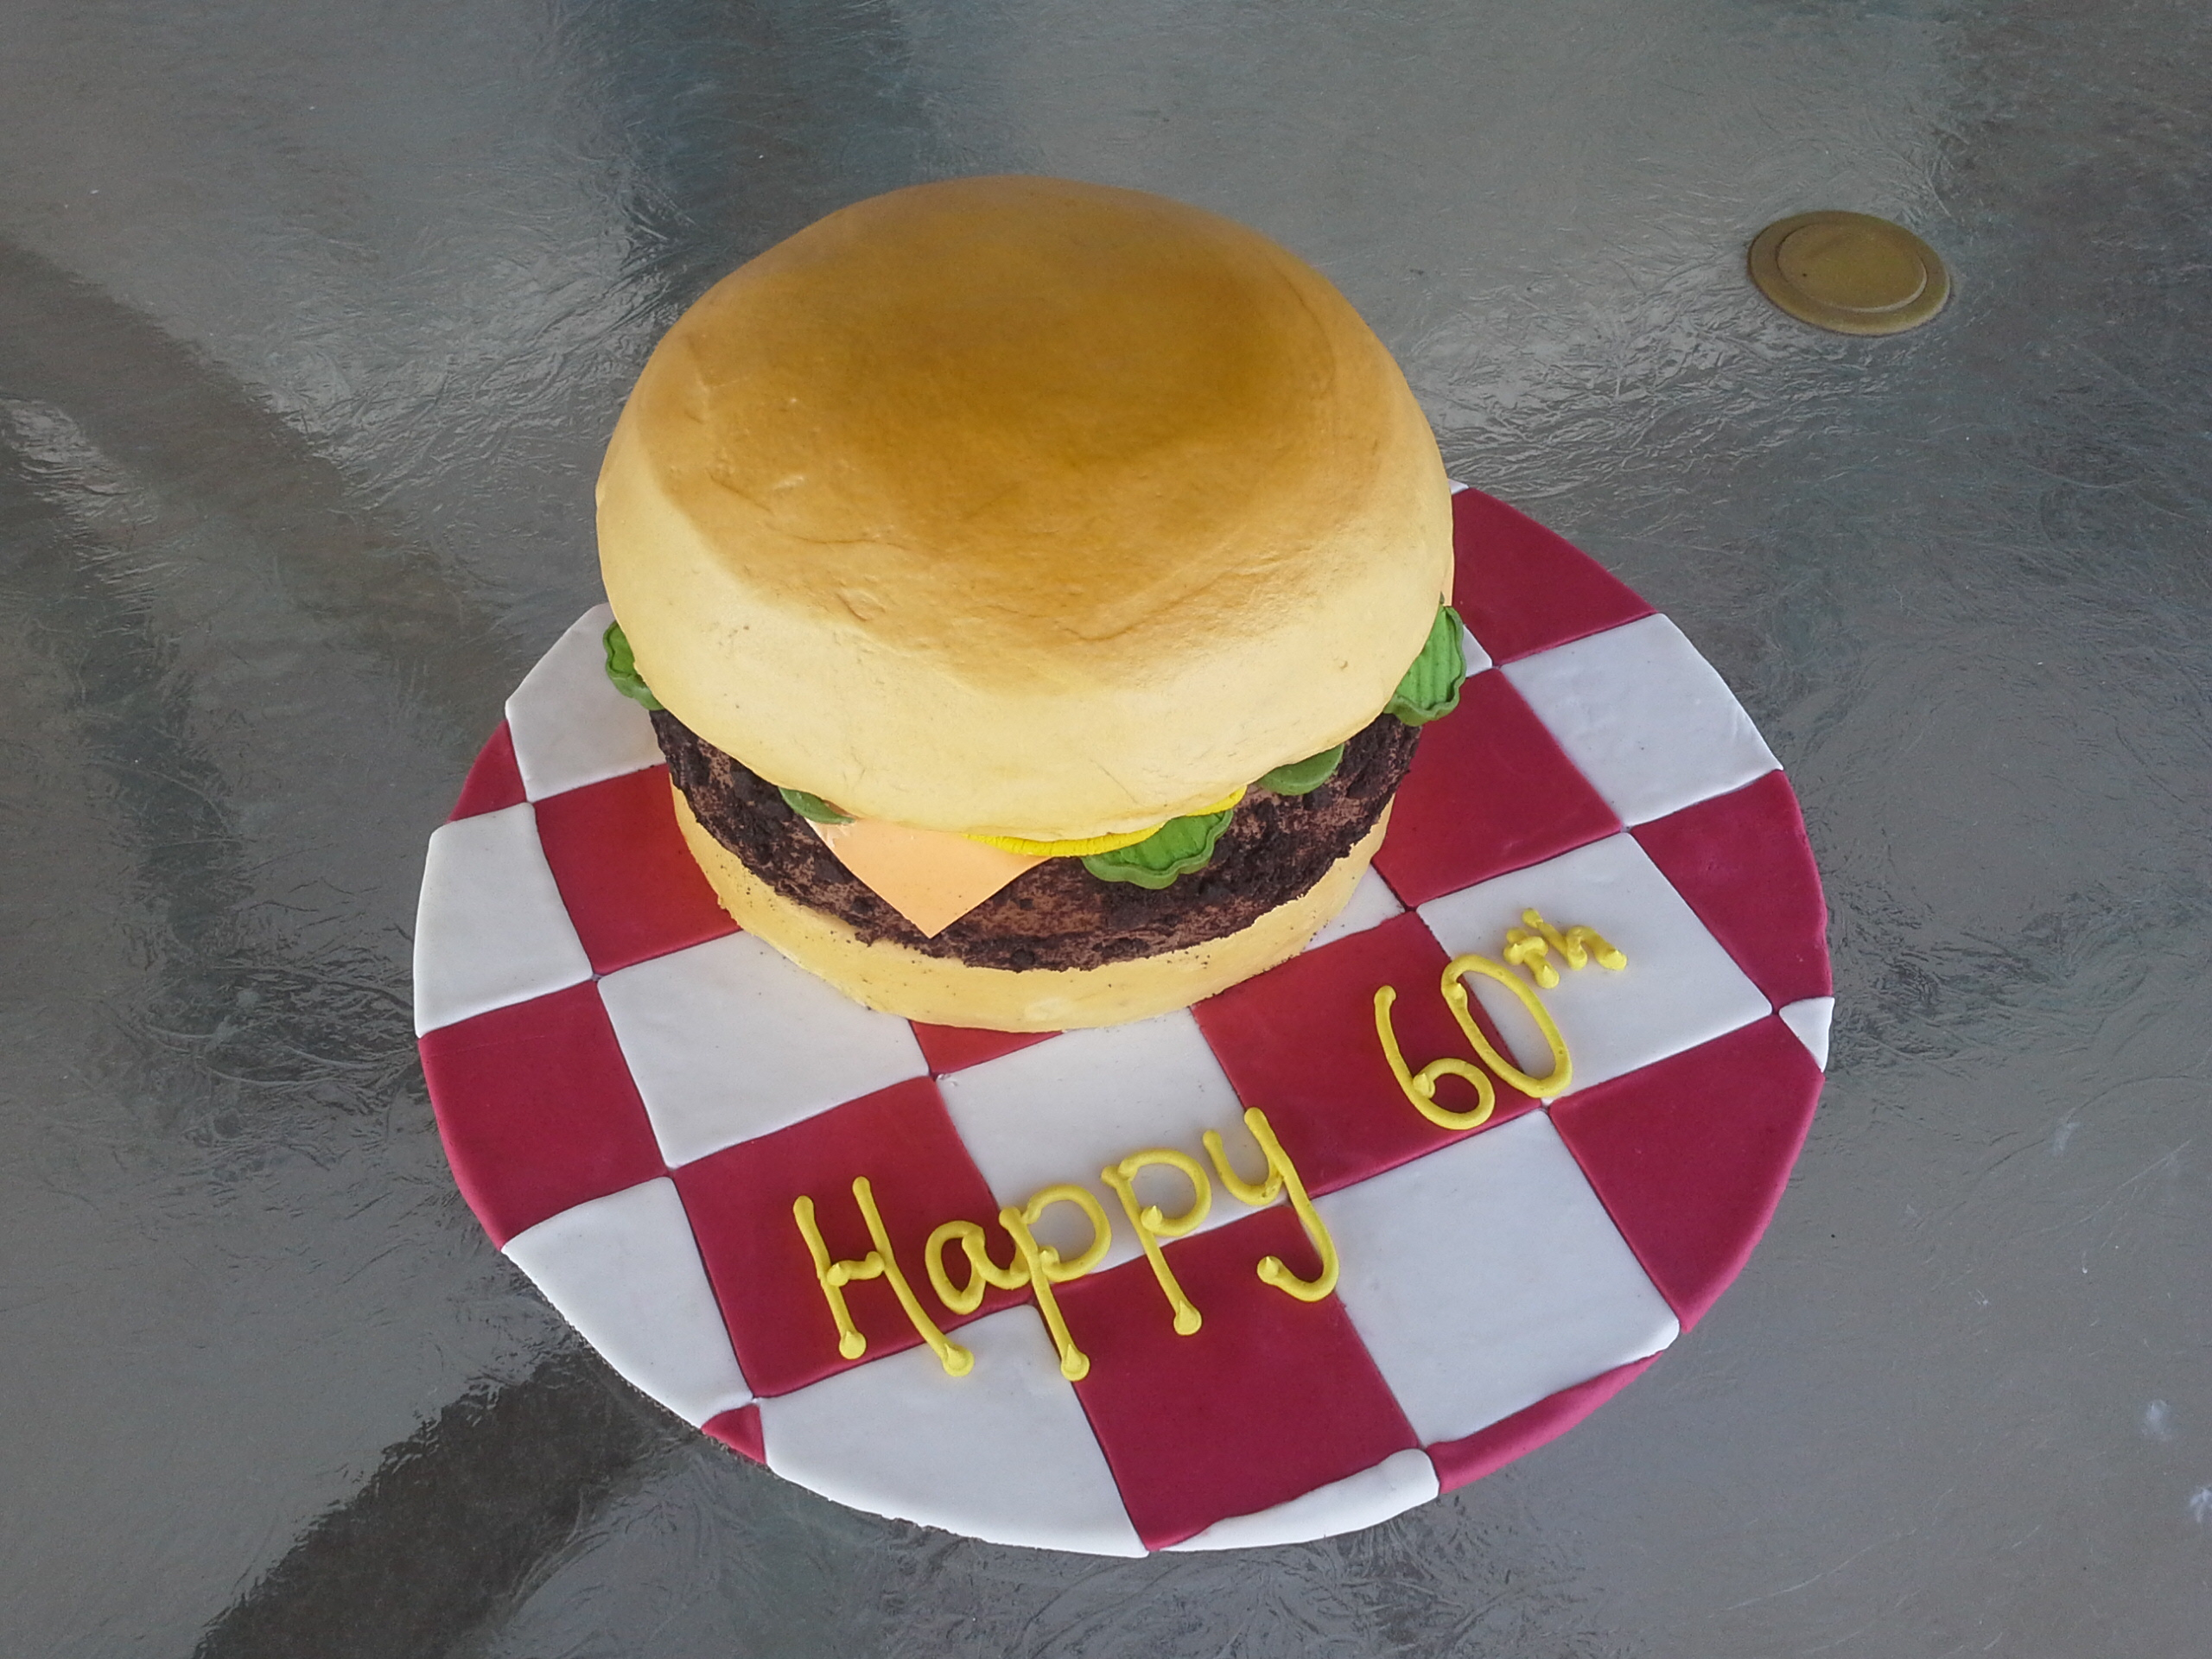 Hamburger cake 2_6_15